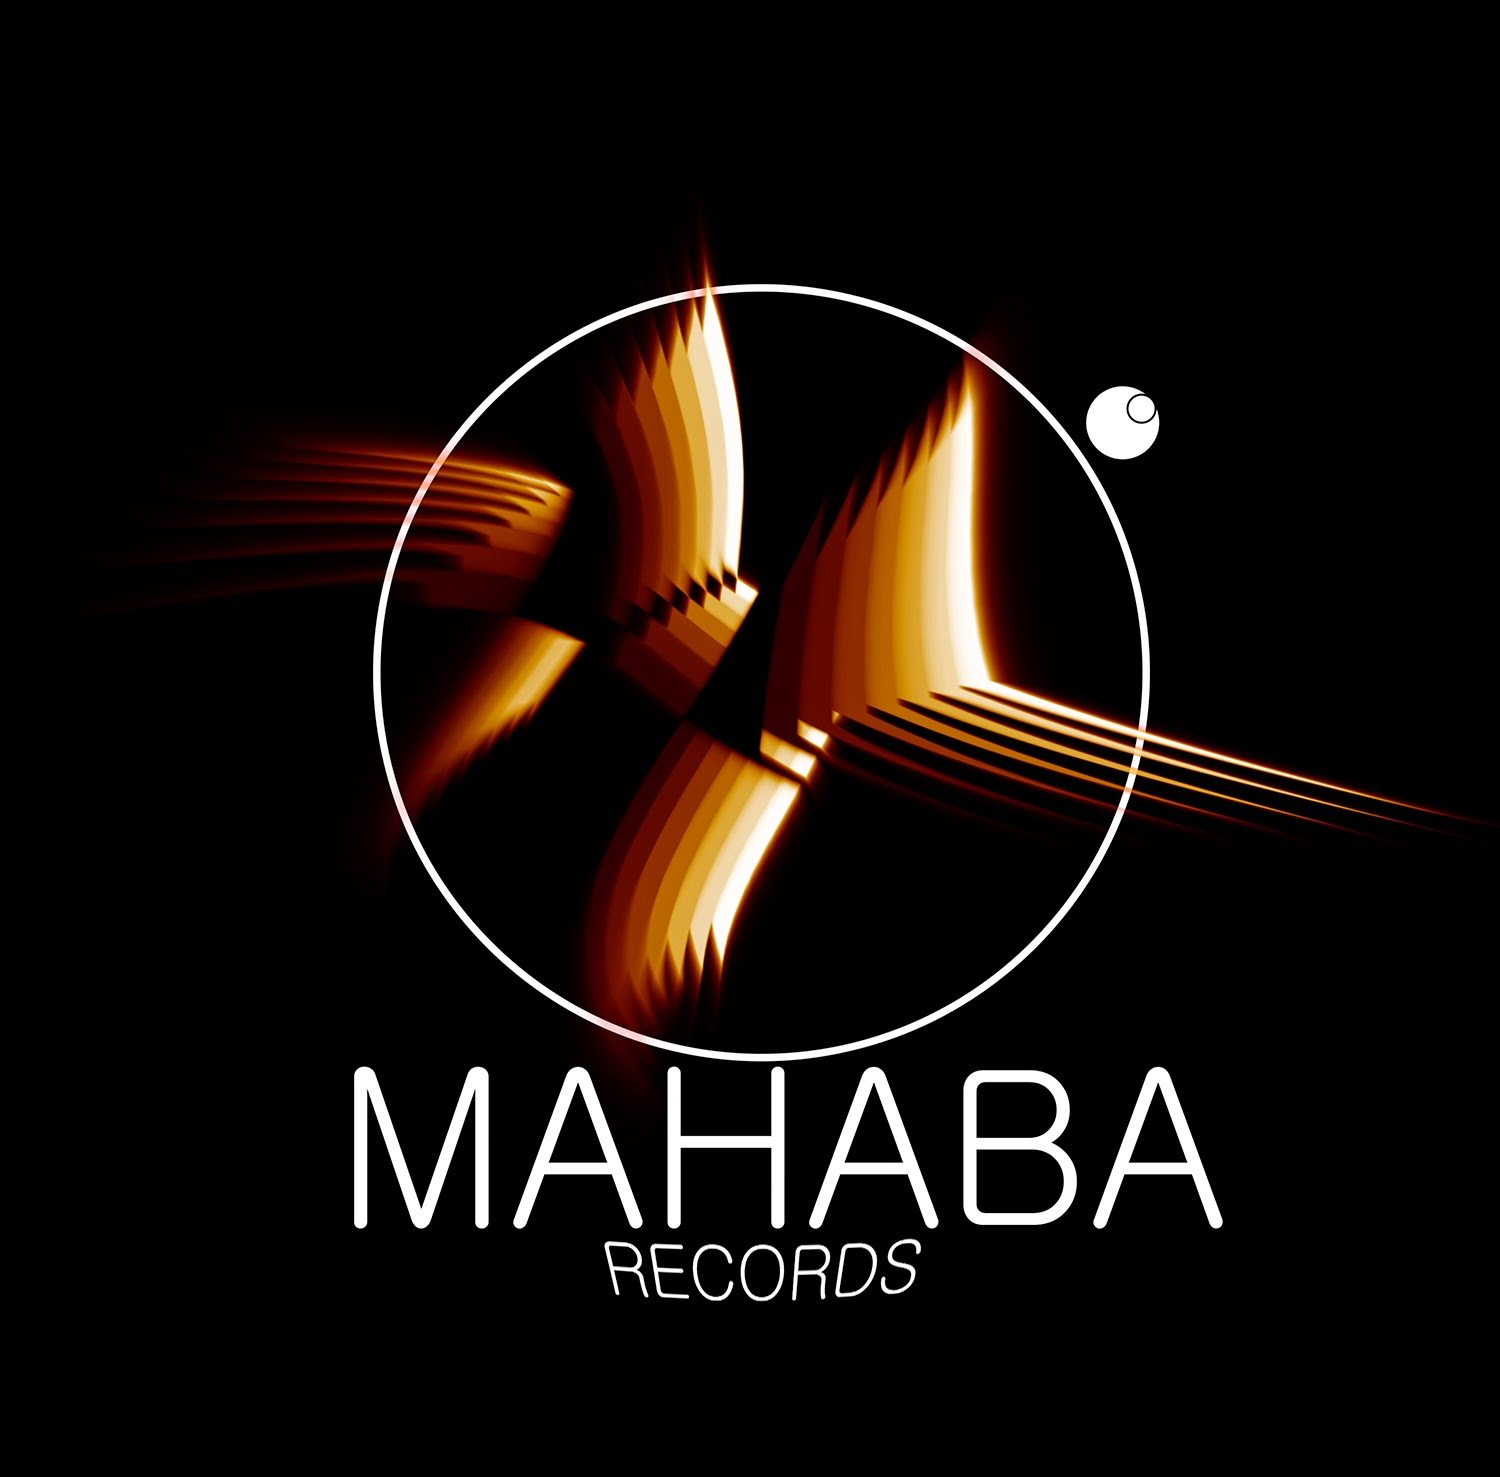 Groovy Mahaba Records Tech House Deep House Techno Contact Us Complete Home Design Collection Papxelindsey Bellcom